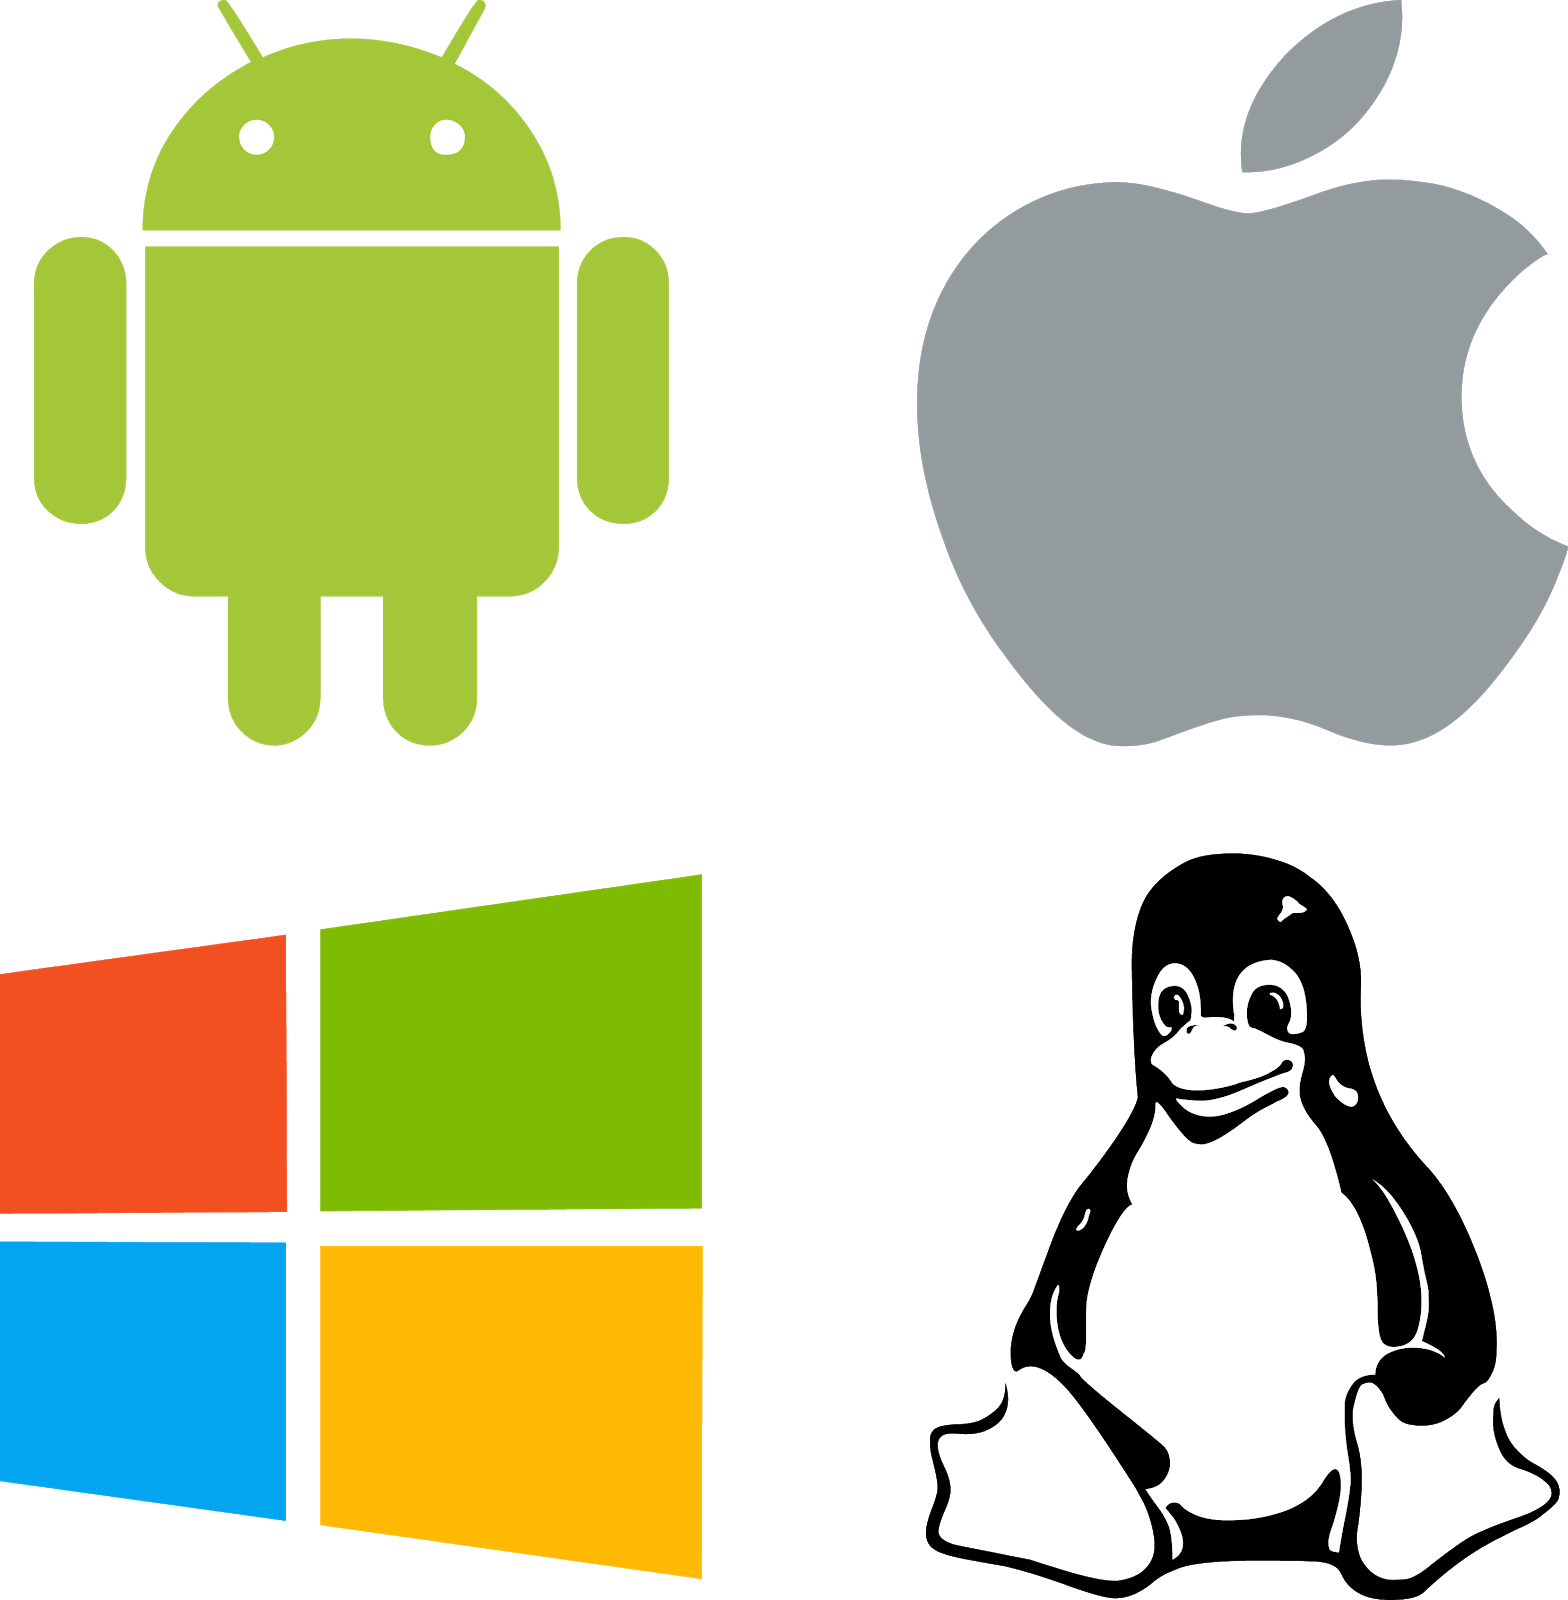 download logos windows linux android mac vector.